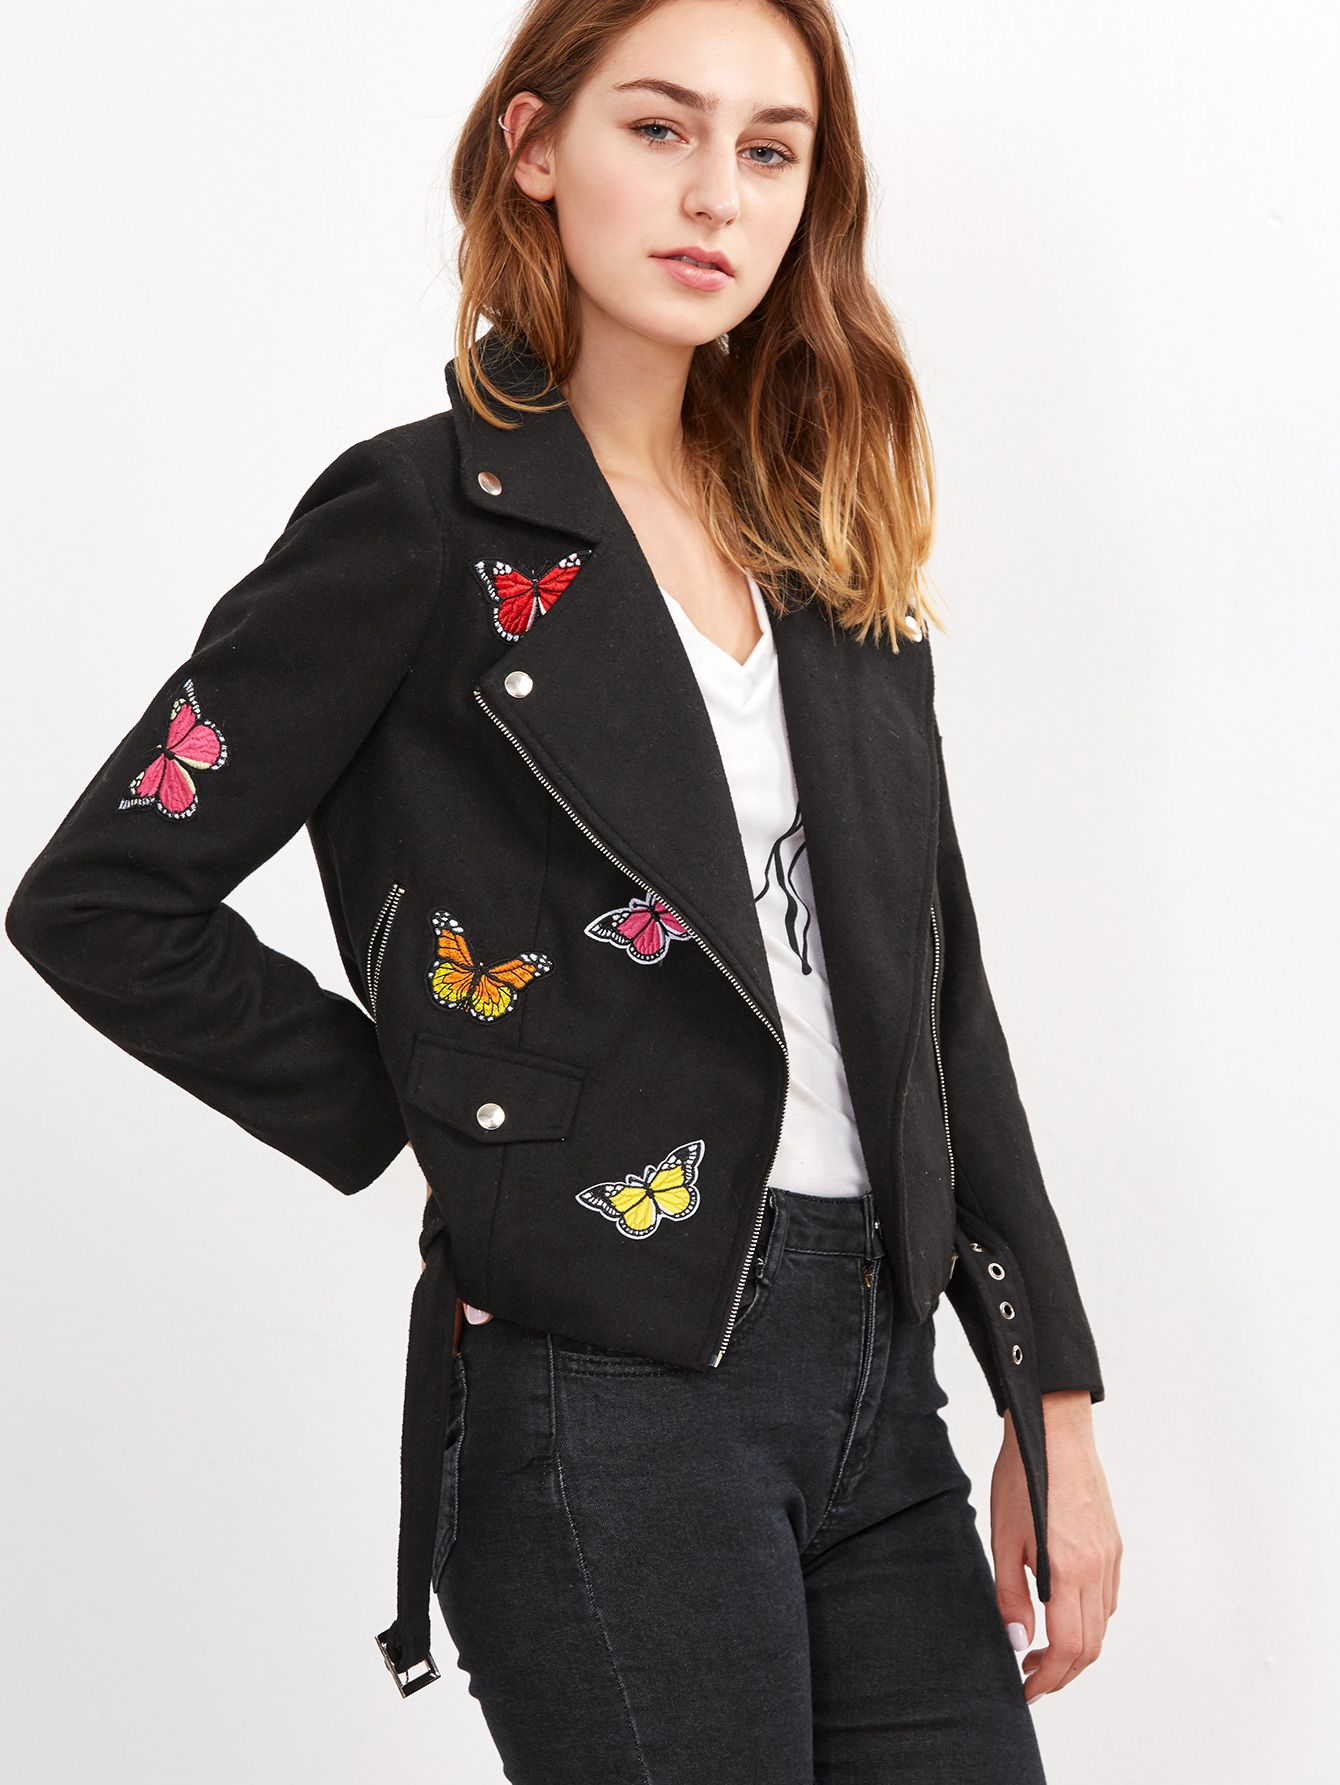 jacket161018704_1 副本 Embroidered jacket, Jackets, Wool